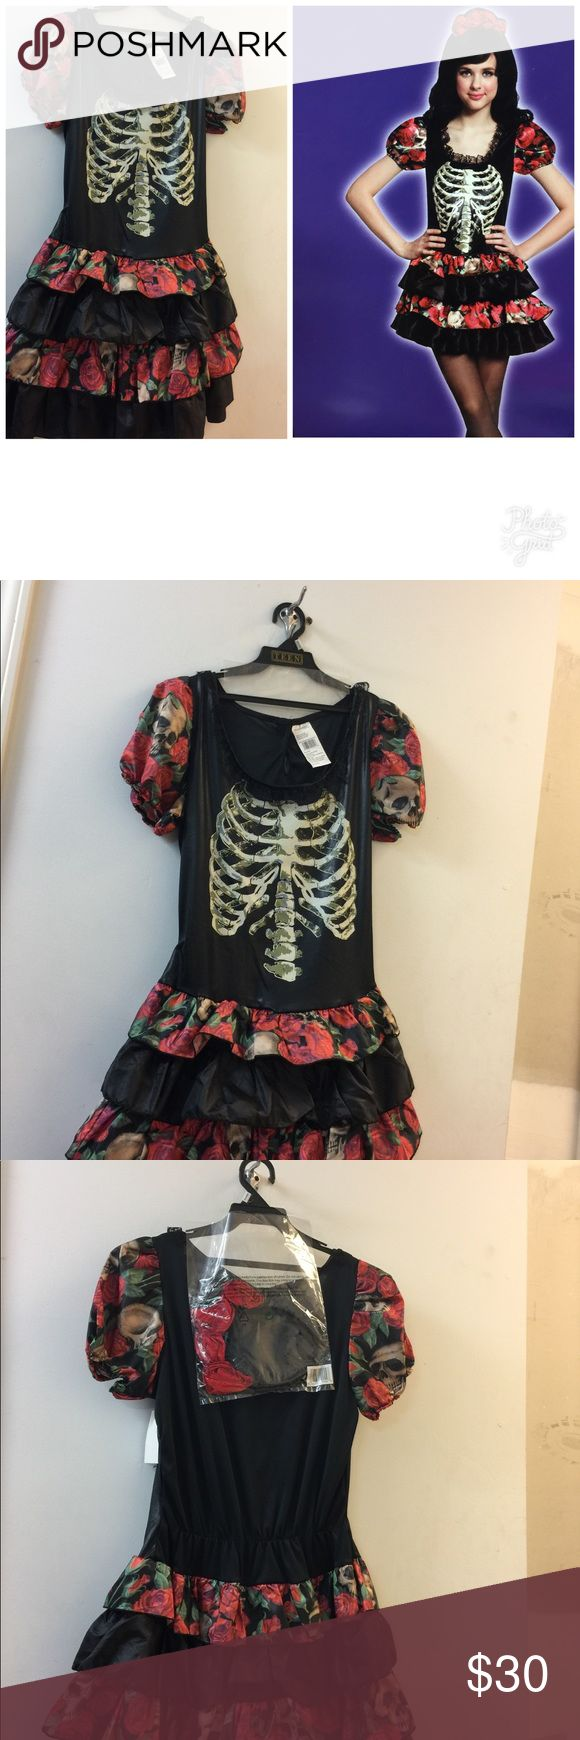 Skull Dancer Teen Girls Costume One Size Fits Most Skull Dancer Teen Girls Costume One Size Fits Most Other